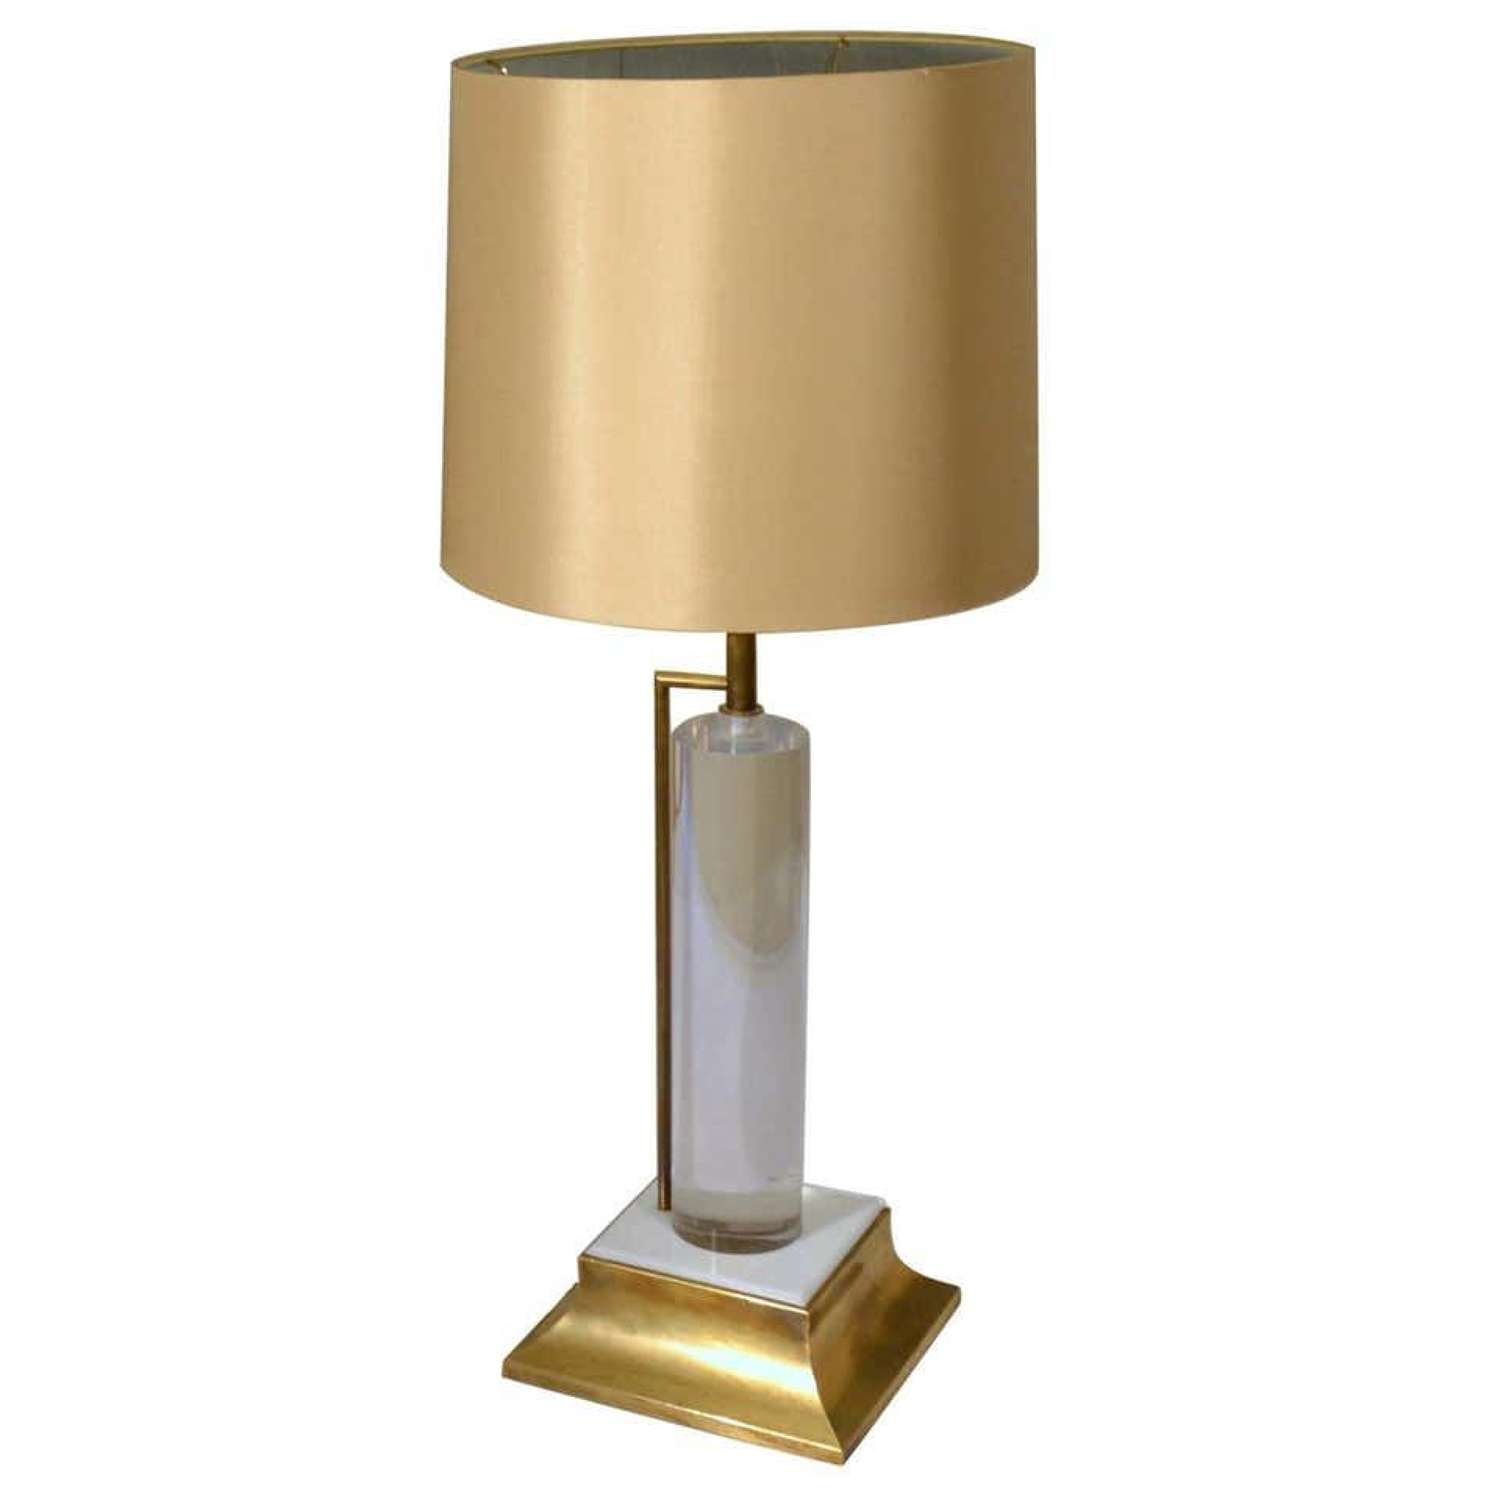 Lucite and Brass Italian 1960s Table Lamp with Silk Lamp Shade